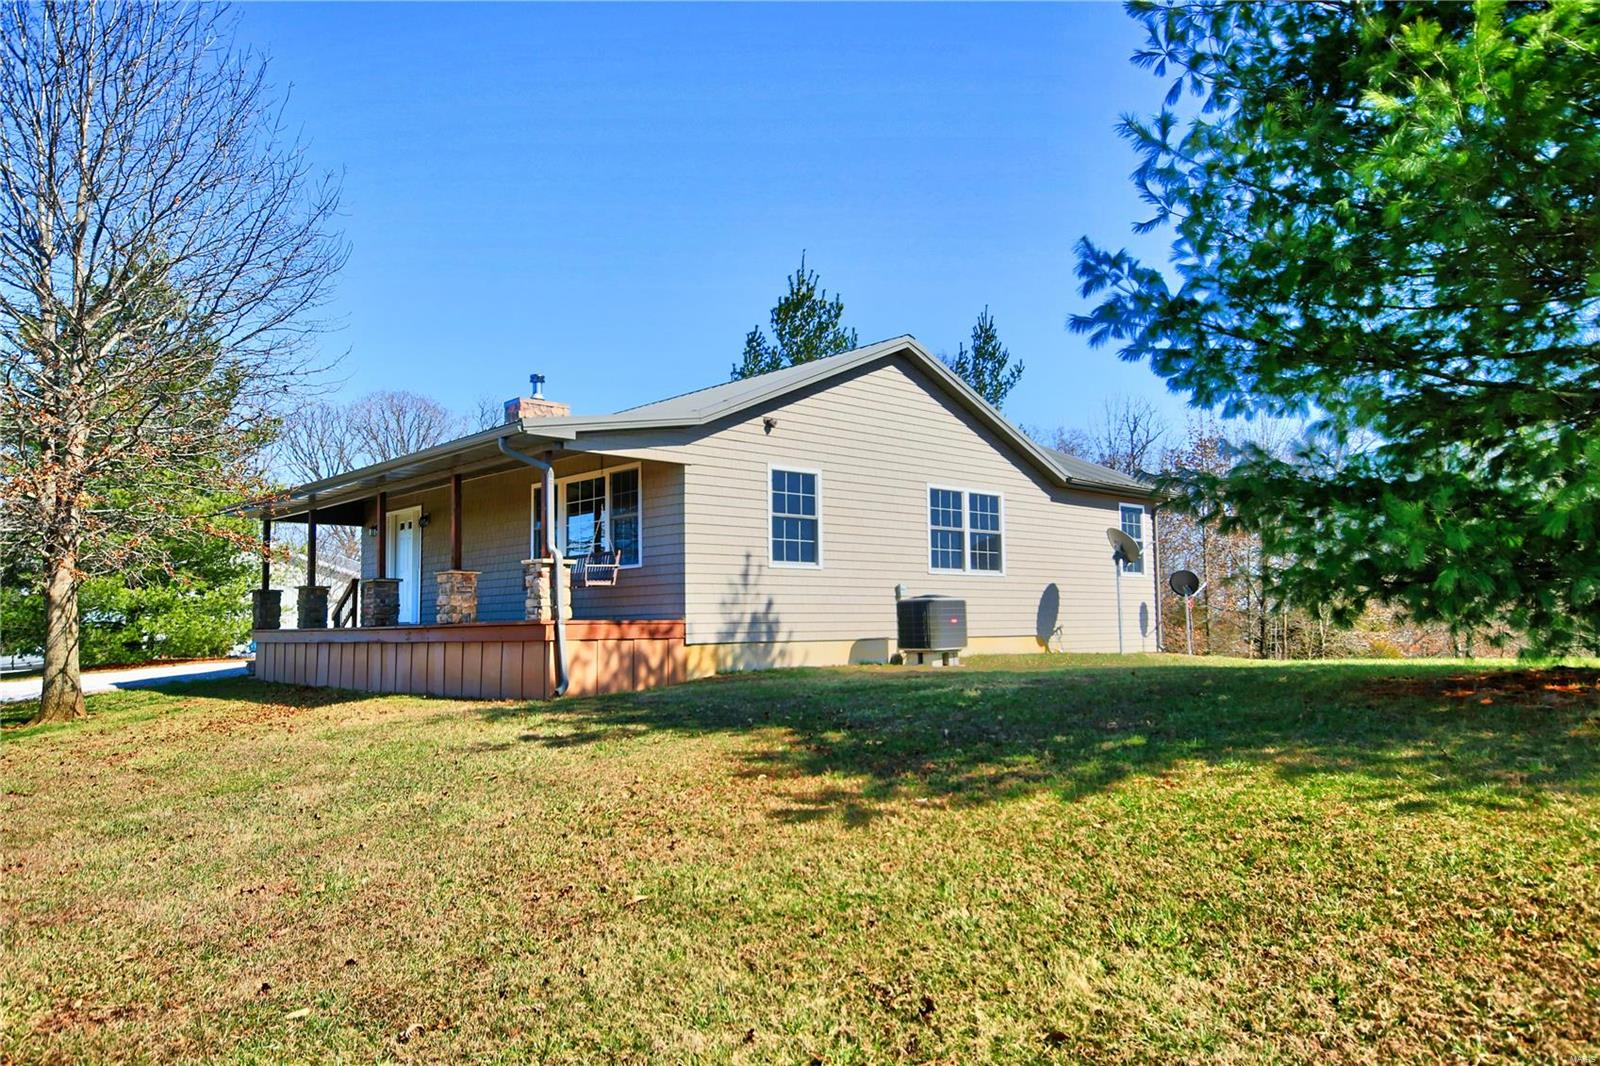 14975 Pike 340 Property Photo - Middletown, MO real estate listing